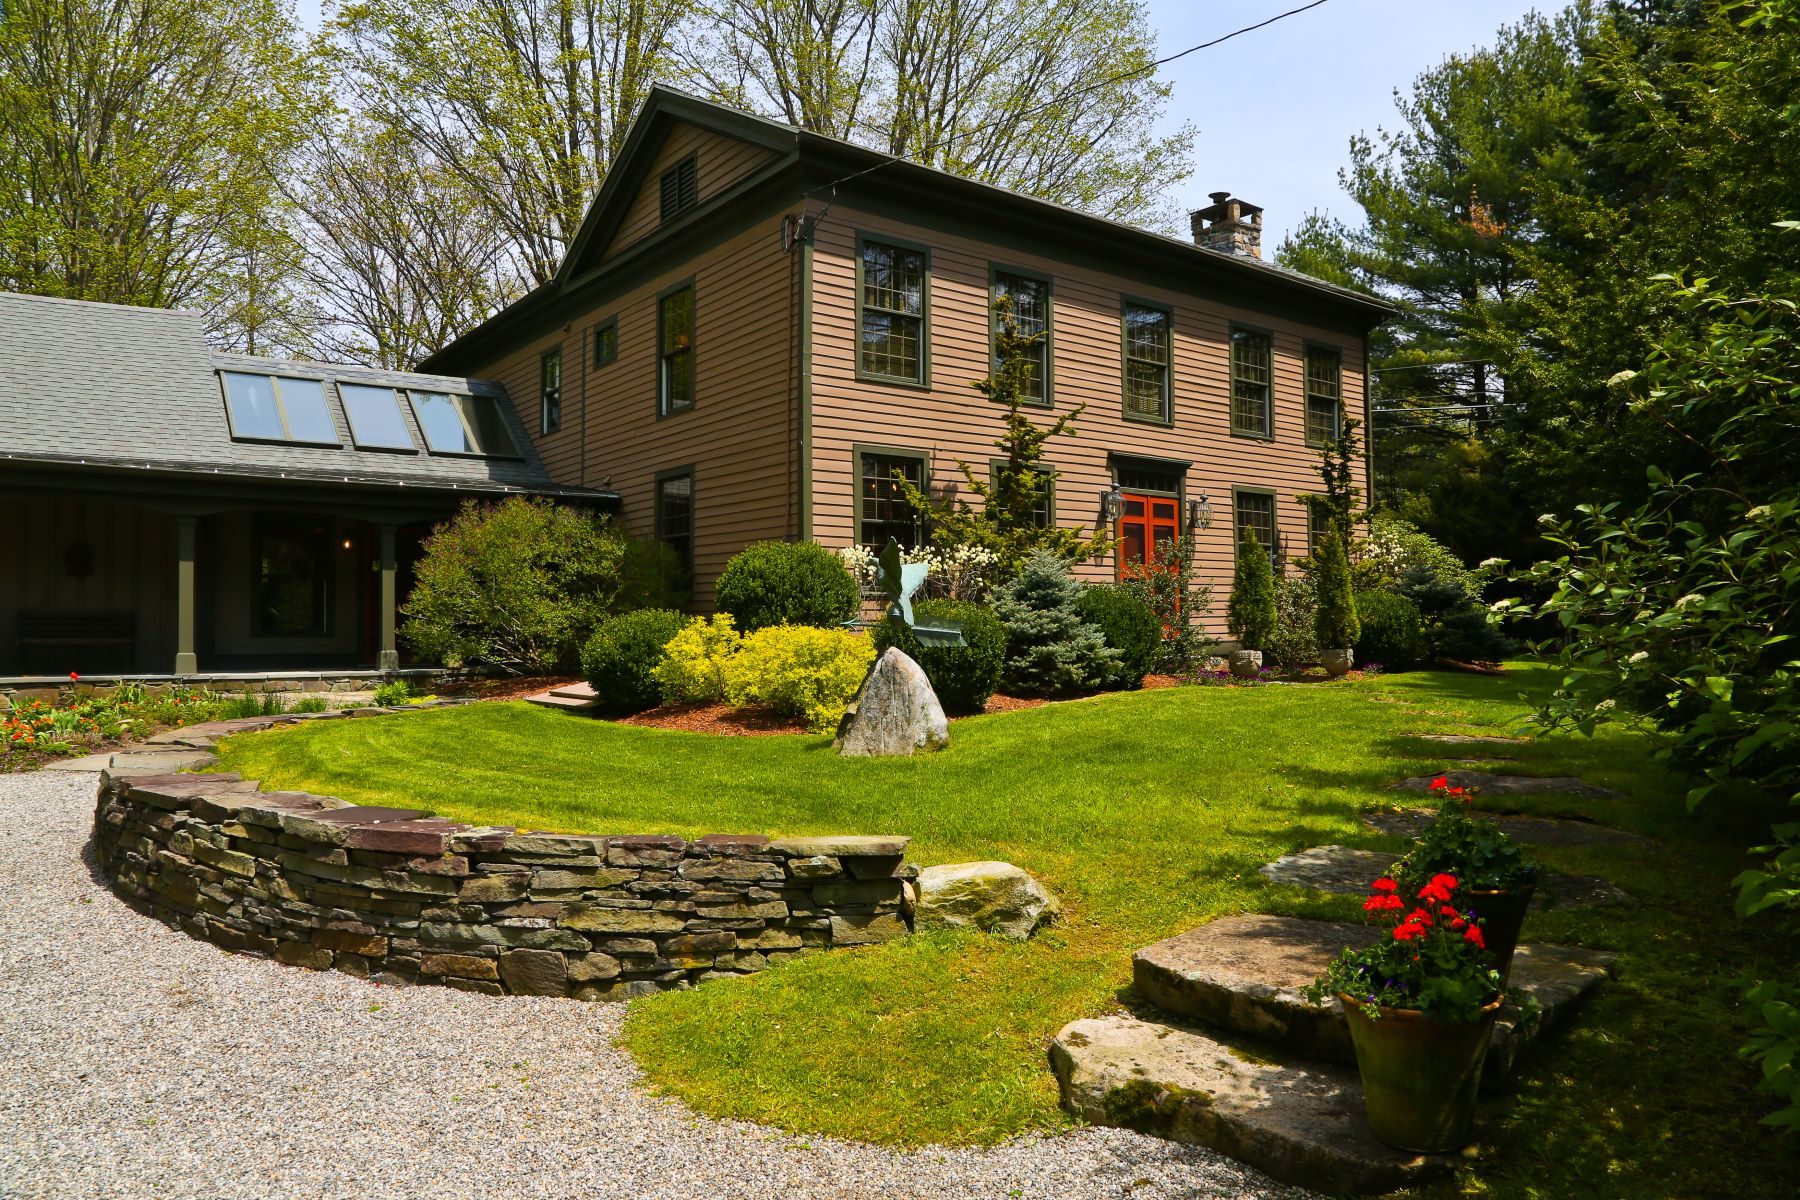 Single Family Home for Active at Meticulous Renovated 19th Century Farmhouse 0 & 399 State Rd Great Barrington, Massachusetts 01230 United States